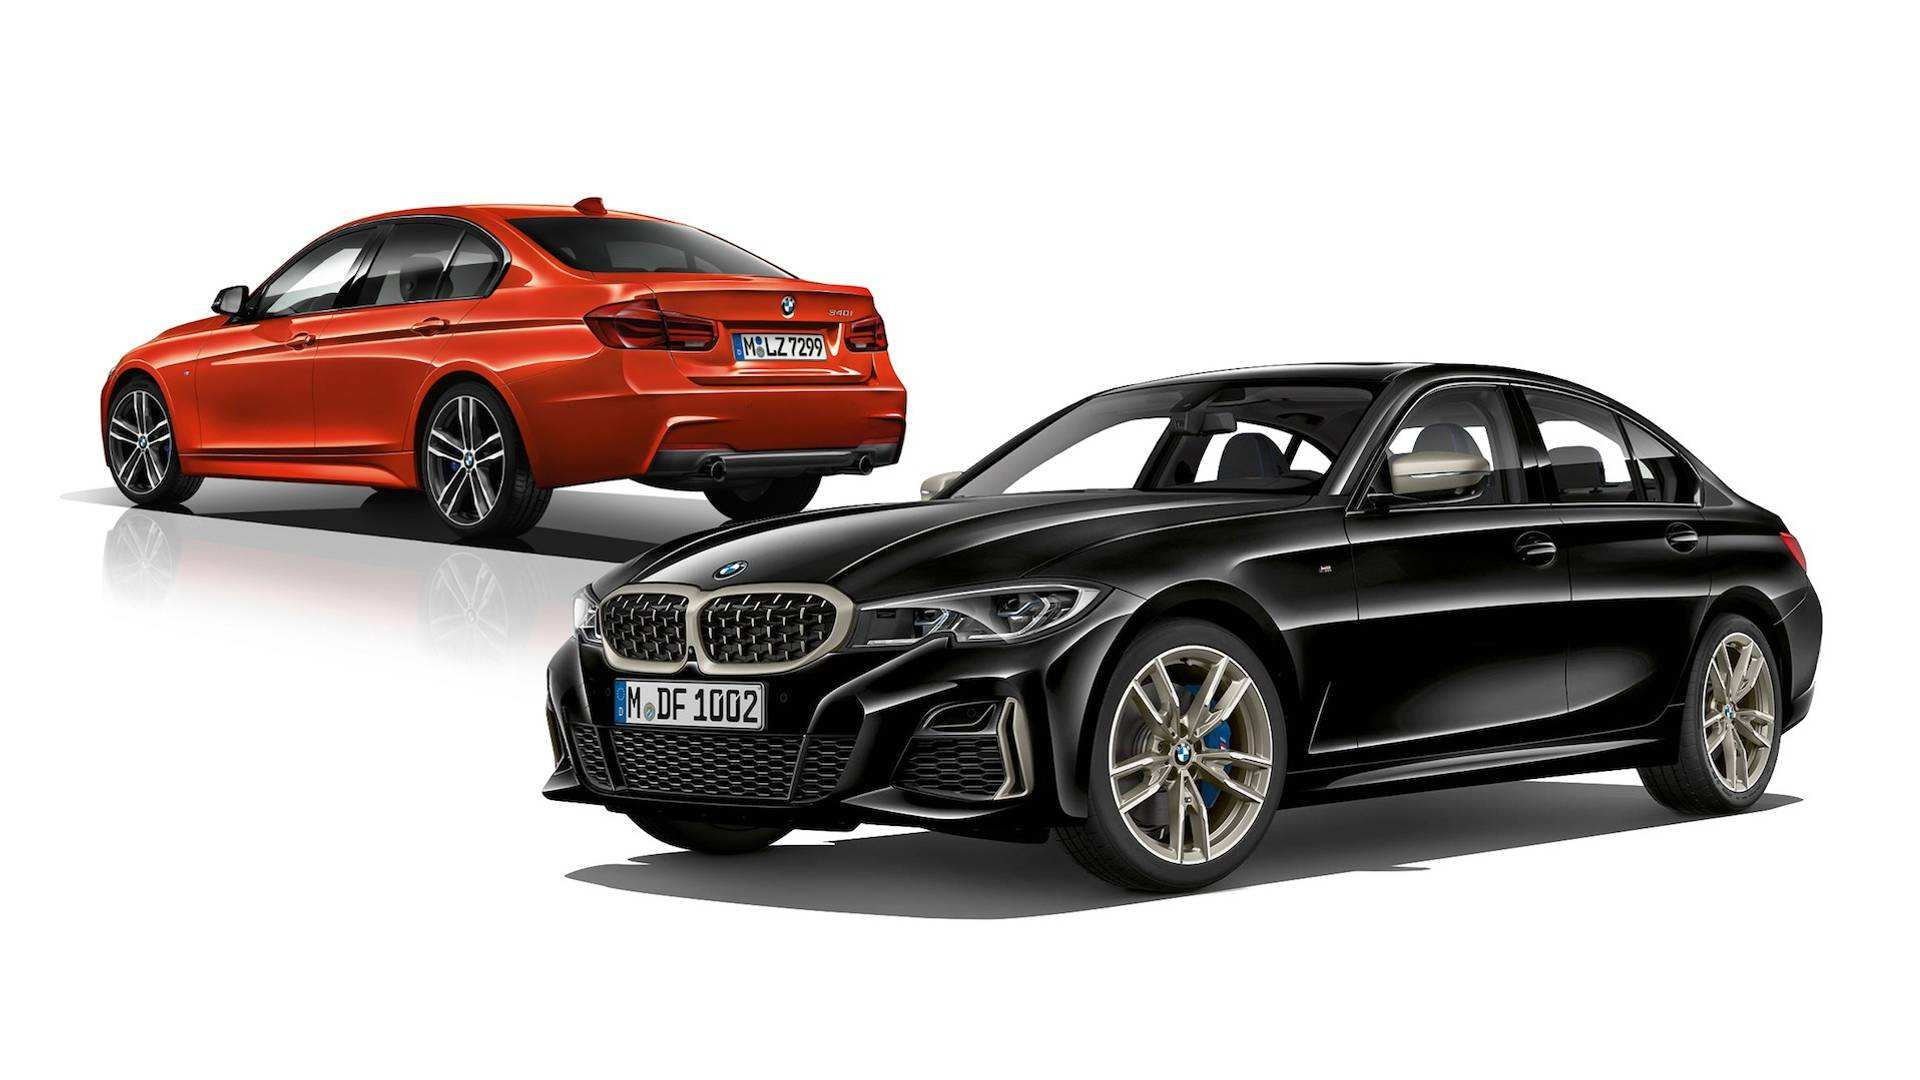 72 Gallery of Bmw F30 2020 Specs and Review for Bmw F30 2020